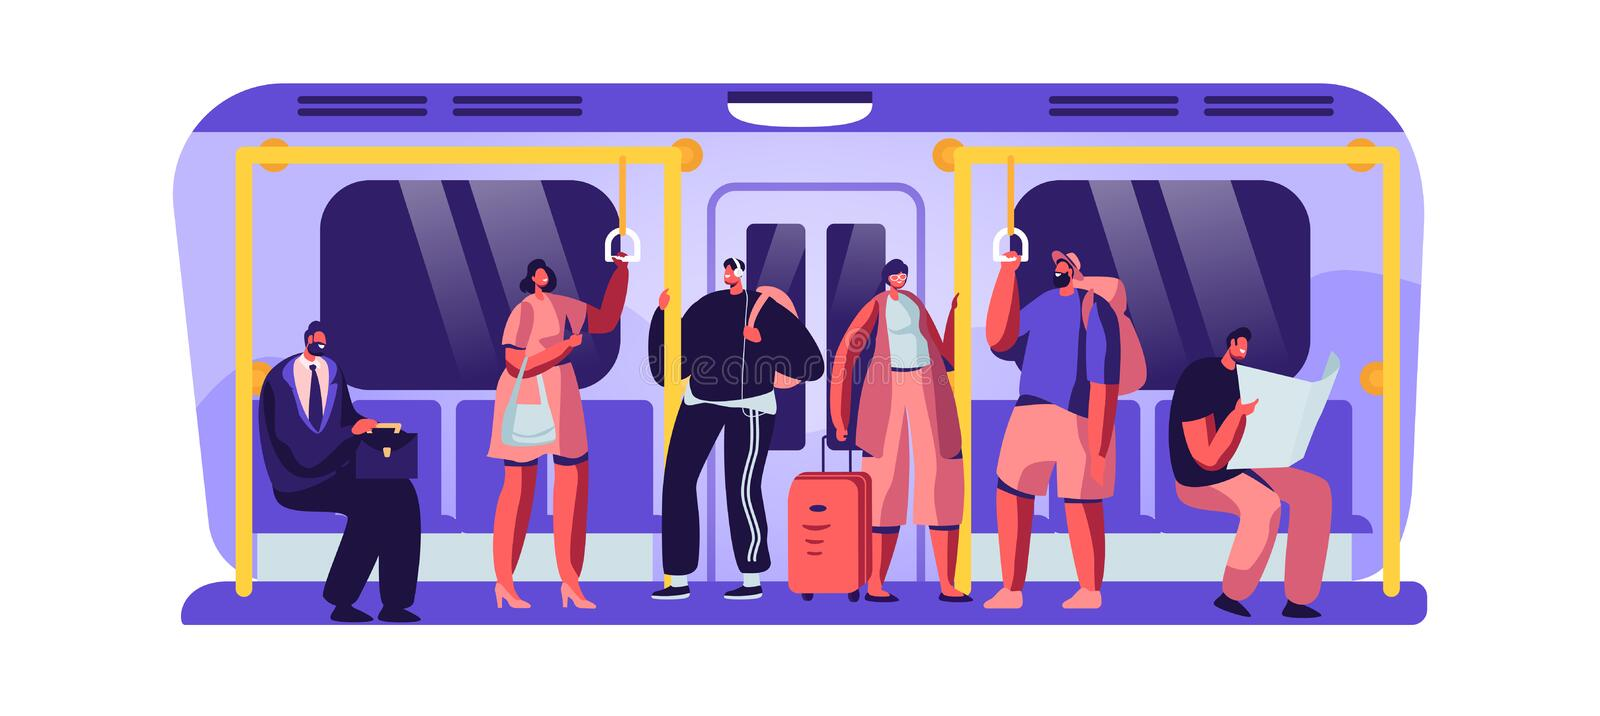 Passengers in Underground Using Urban Public Transport Metro. Tourists and Native Citizens Characters Inside Underpass. Transportation. People Going by Subway stock illustration